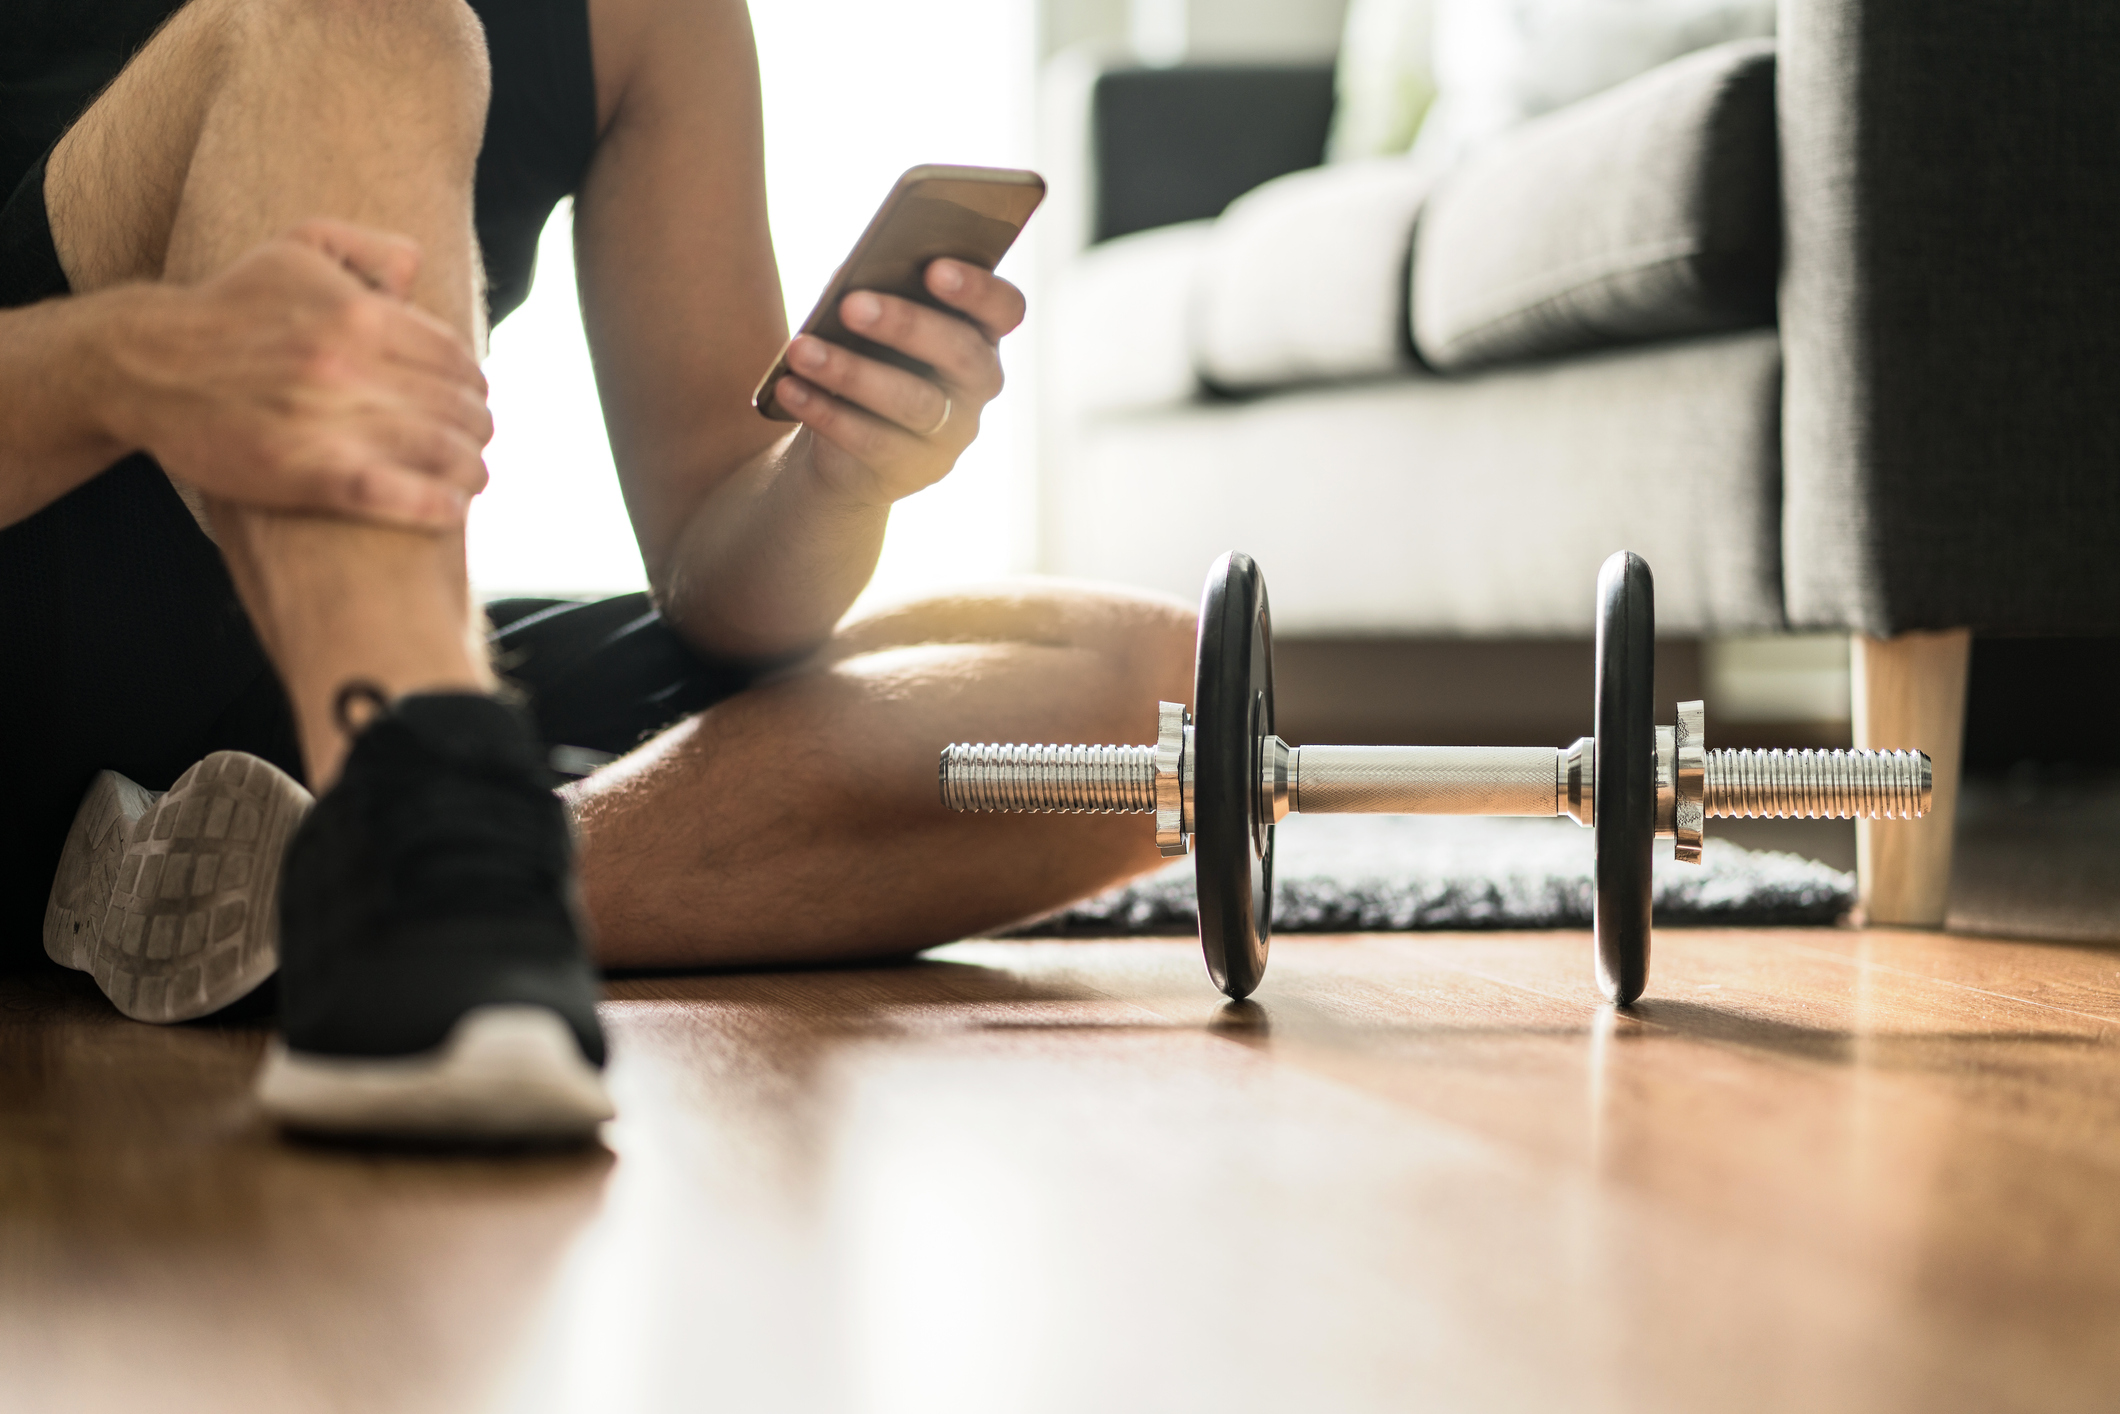 Man using smartphone during workout at home